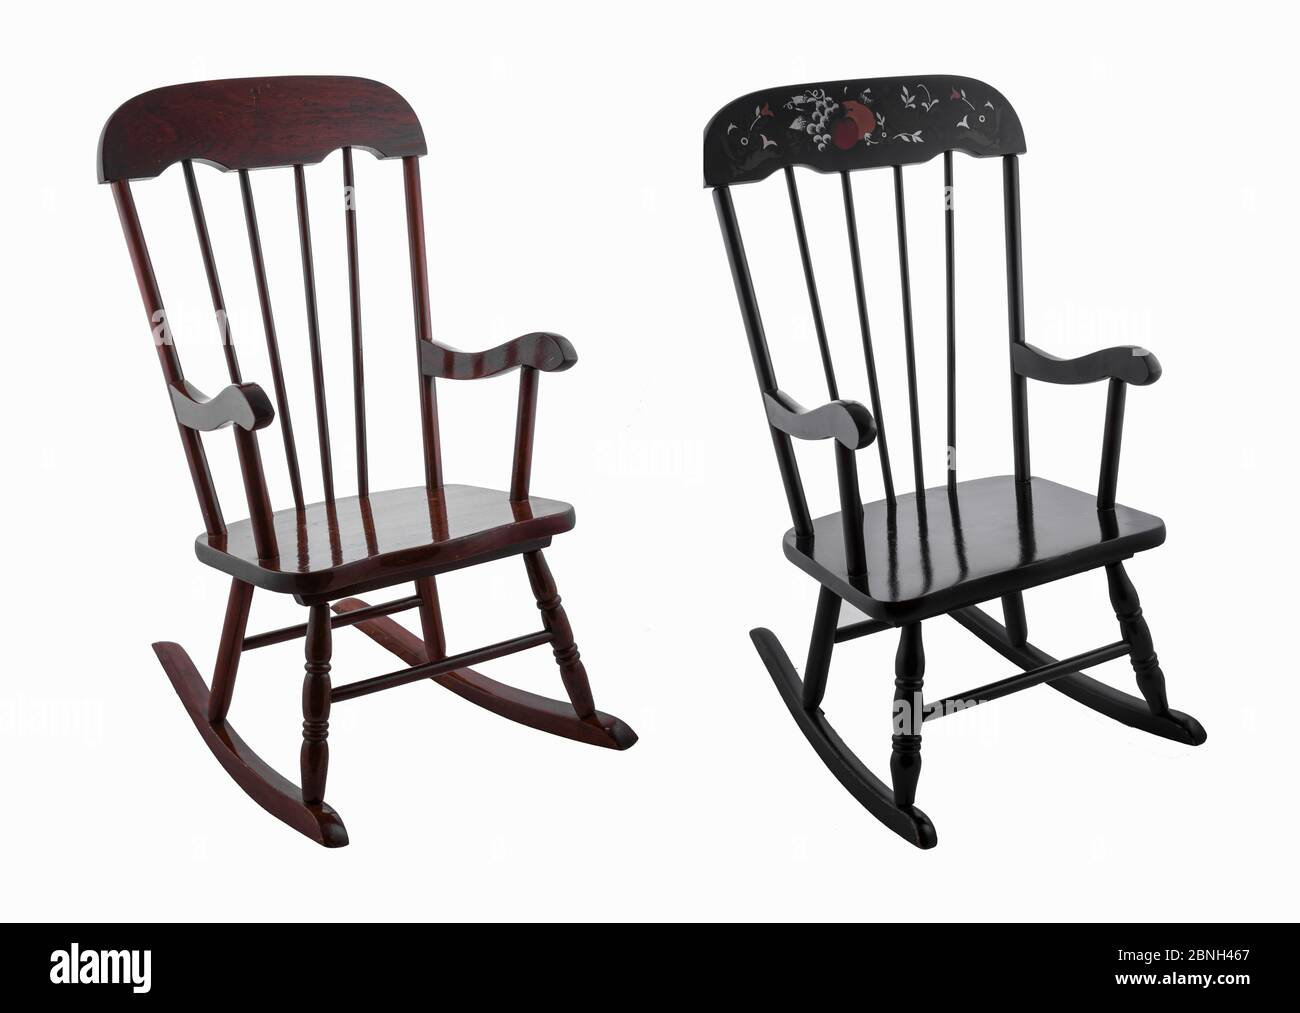 Picture of: The Wooden Rocking Chairs Isolated On The White Background Stock Photo Alamy